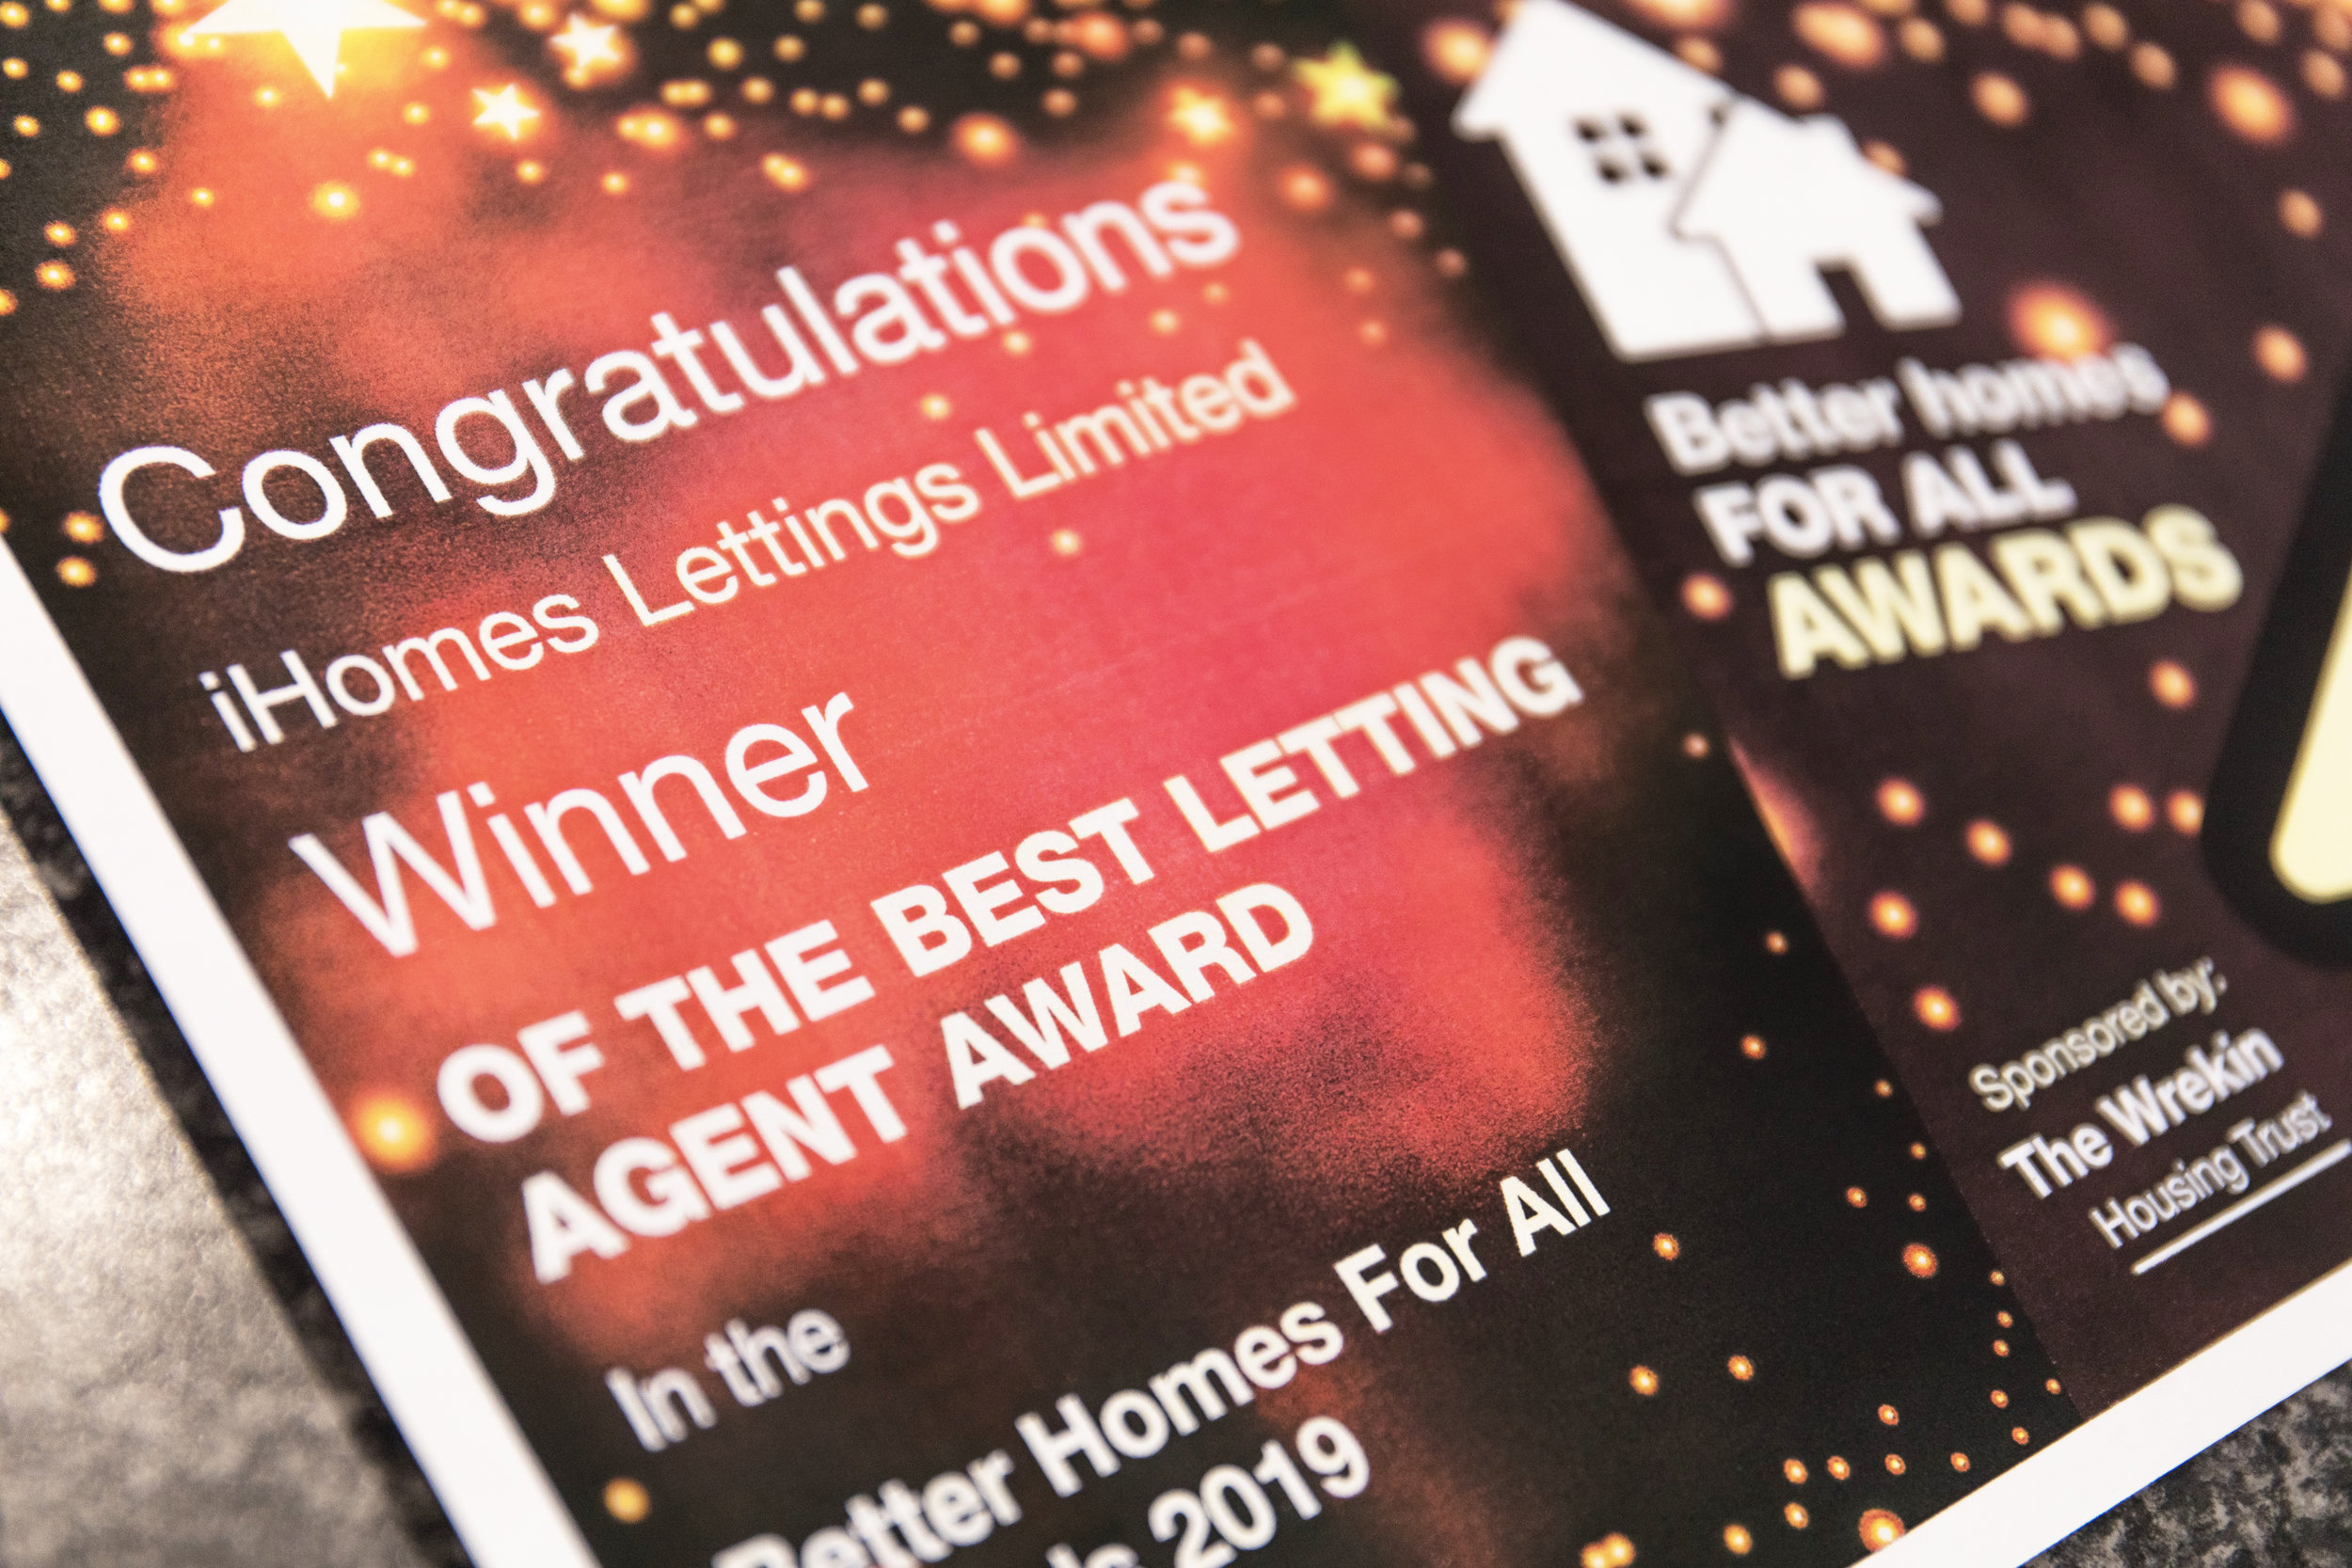 The Best Letting Agency 2019 - iHome Lettings are extremely proud to announce that we are the winners of the Better Homes for All Award 2019.We were voted as the best letting agency in Telford & Wrekin as recognition for our commitment to outstanding customer service, excellent housing statistics and unrivalled customer satisfaction.